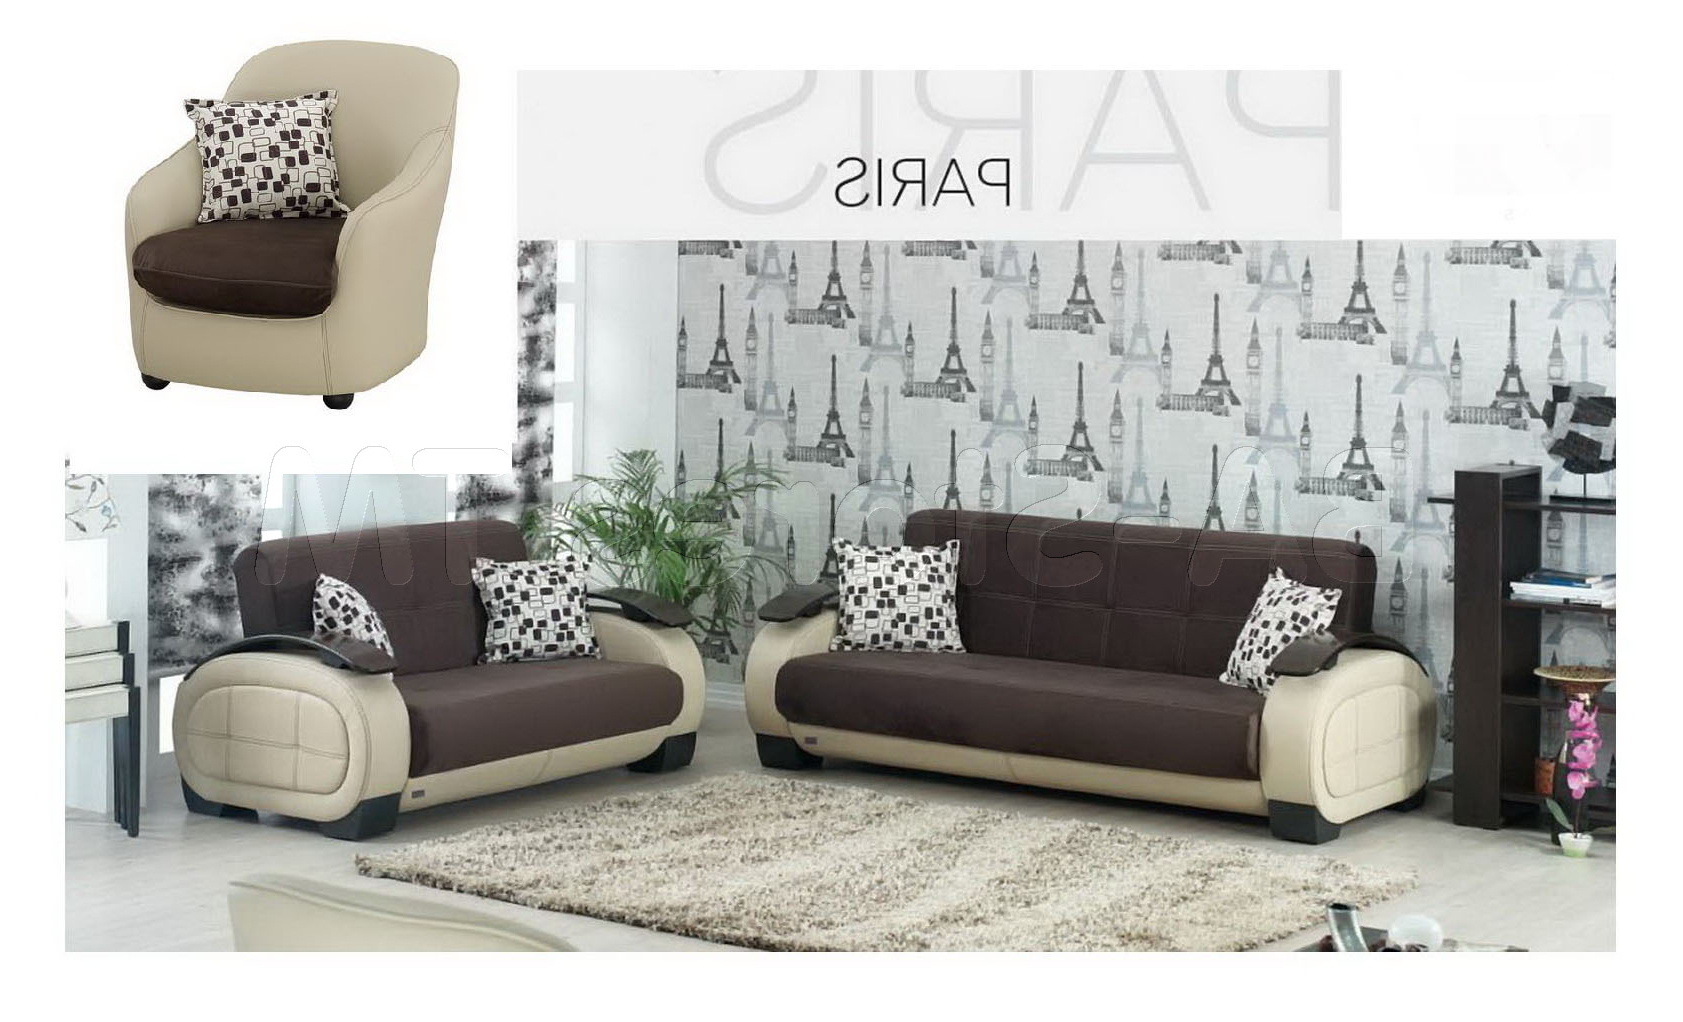 Lovely Sofa And Chair Set 61 On Living Room Sofa Inspiration With With Regard To Most Recent Sofa And Chair Set (Gallery 10 of 20)